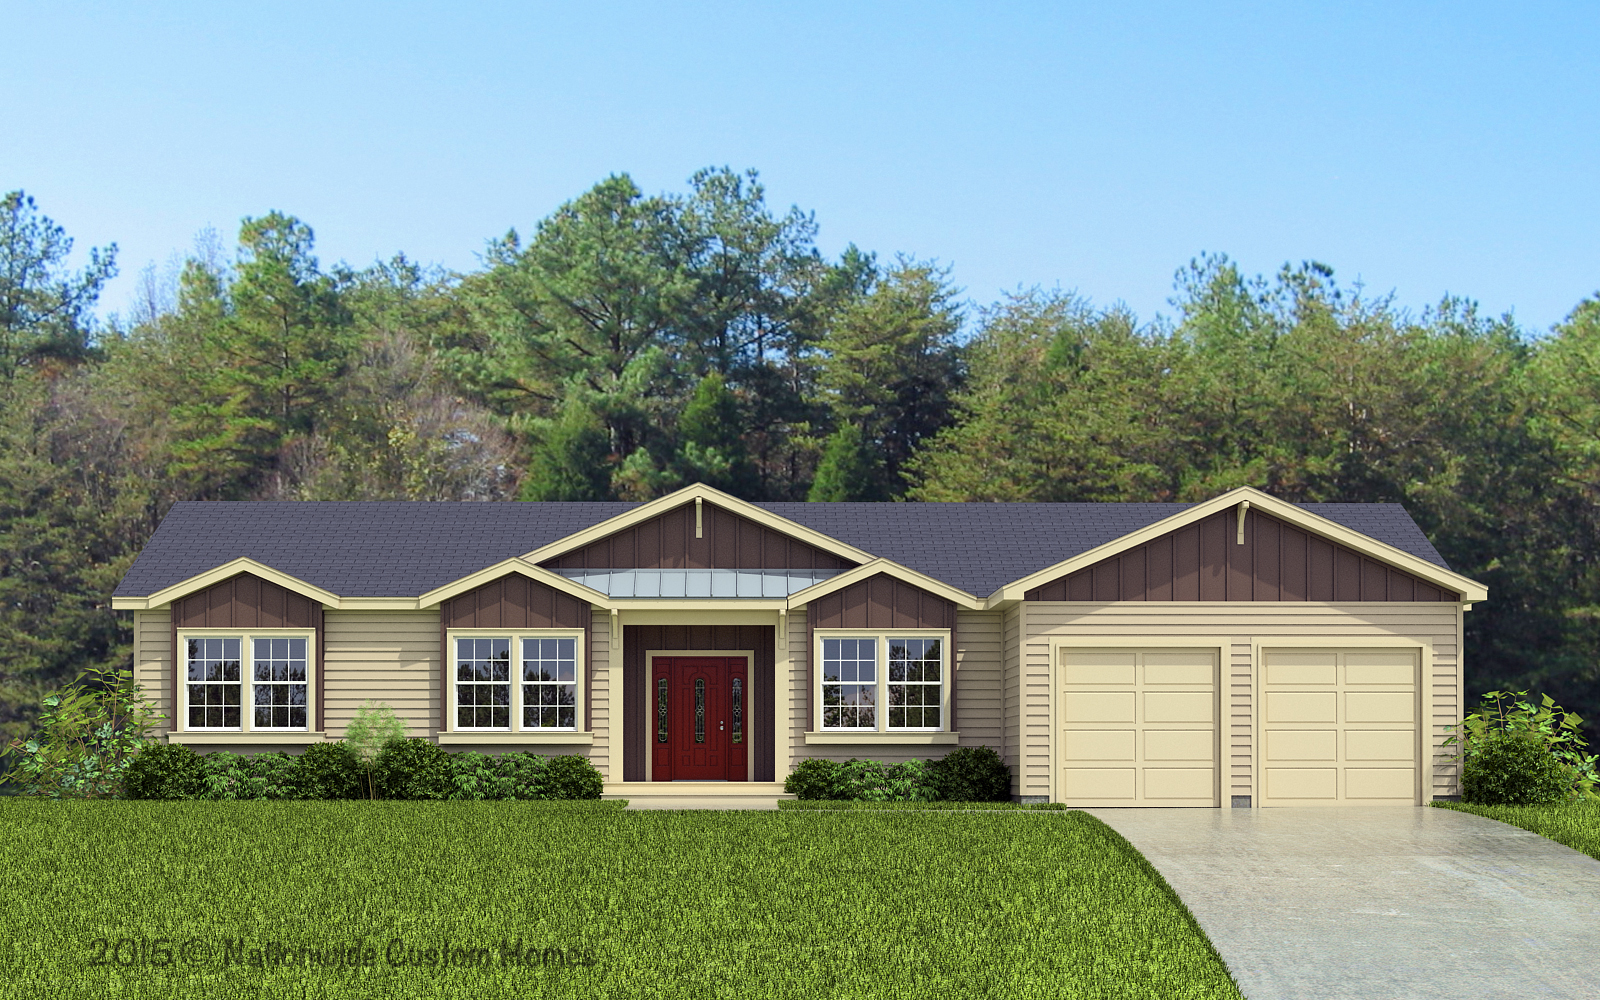 Modular Homes For Sale In Aberdeen Nc